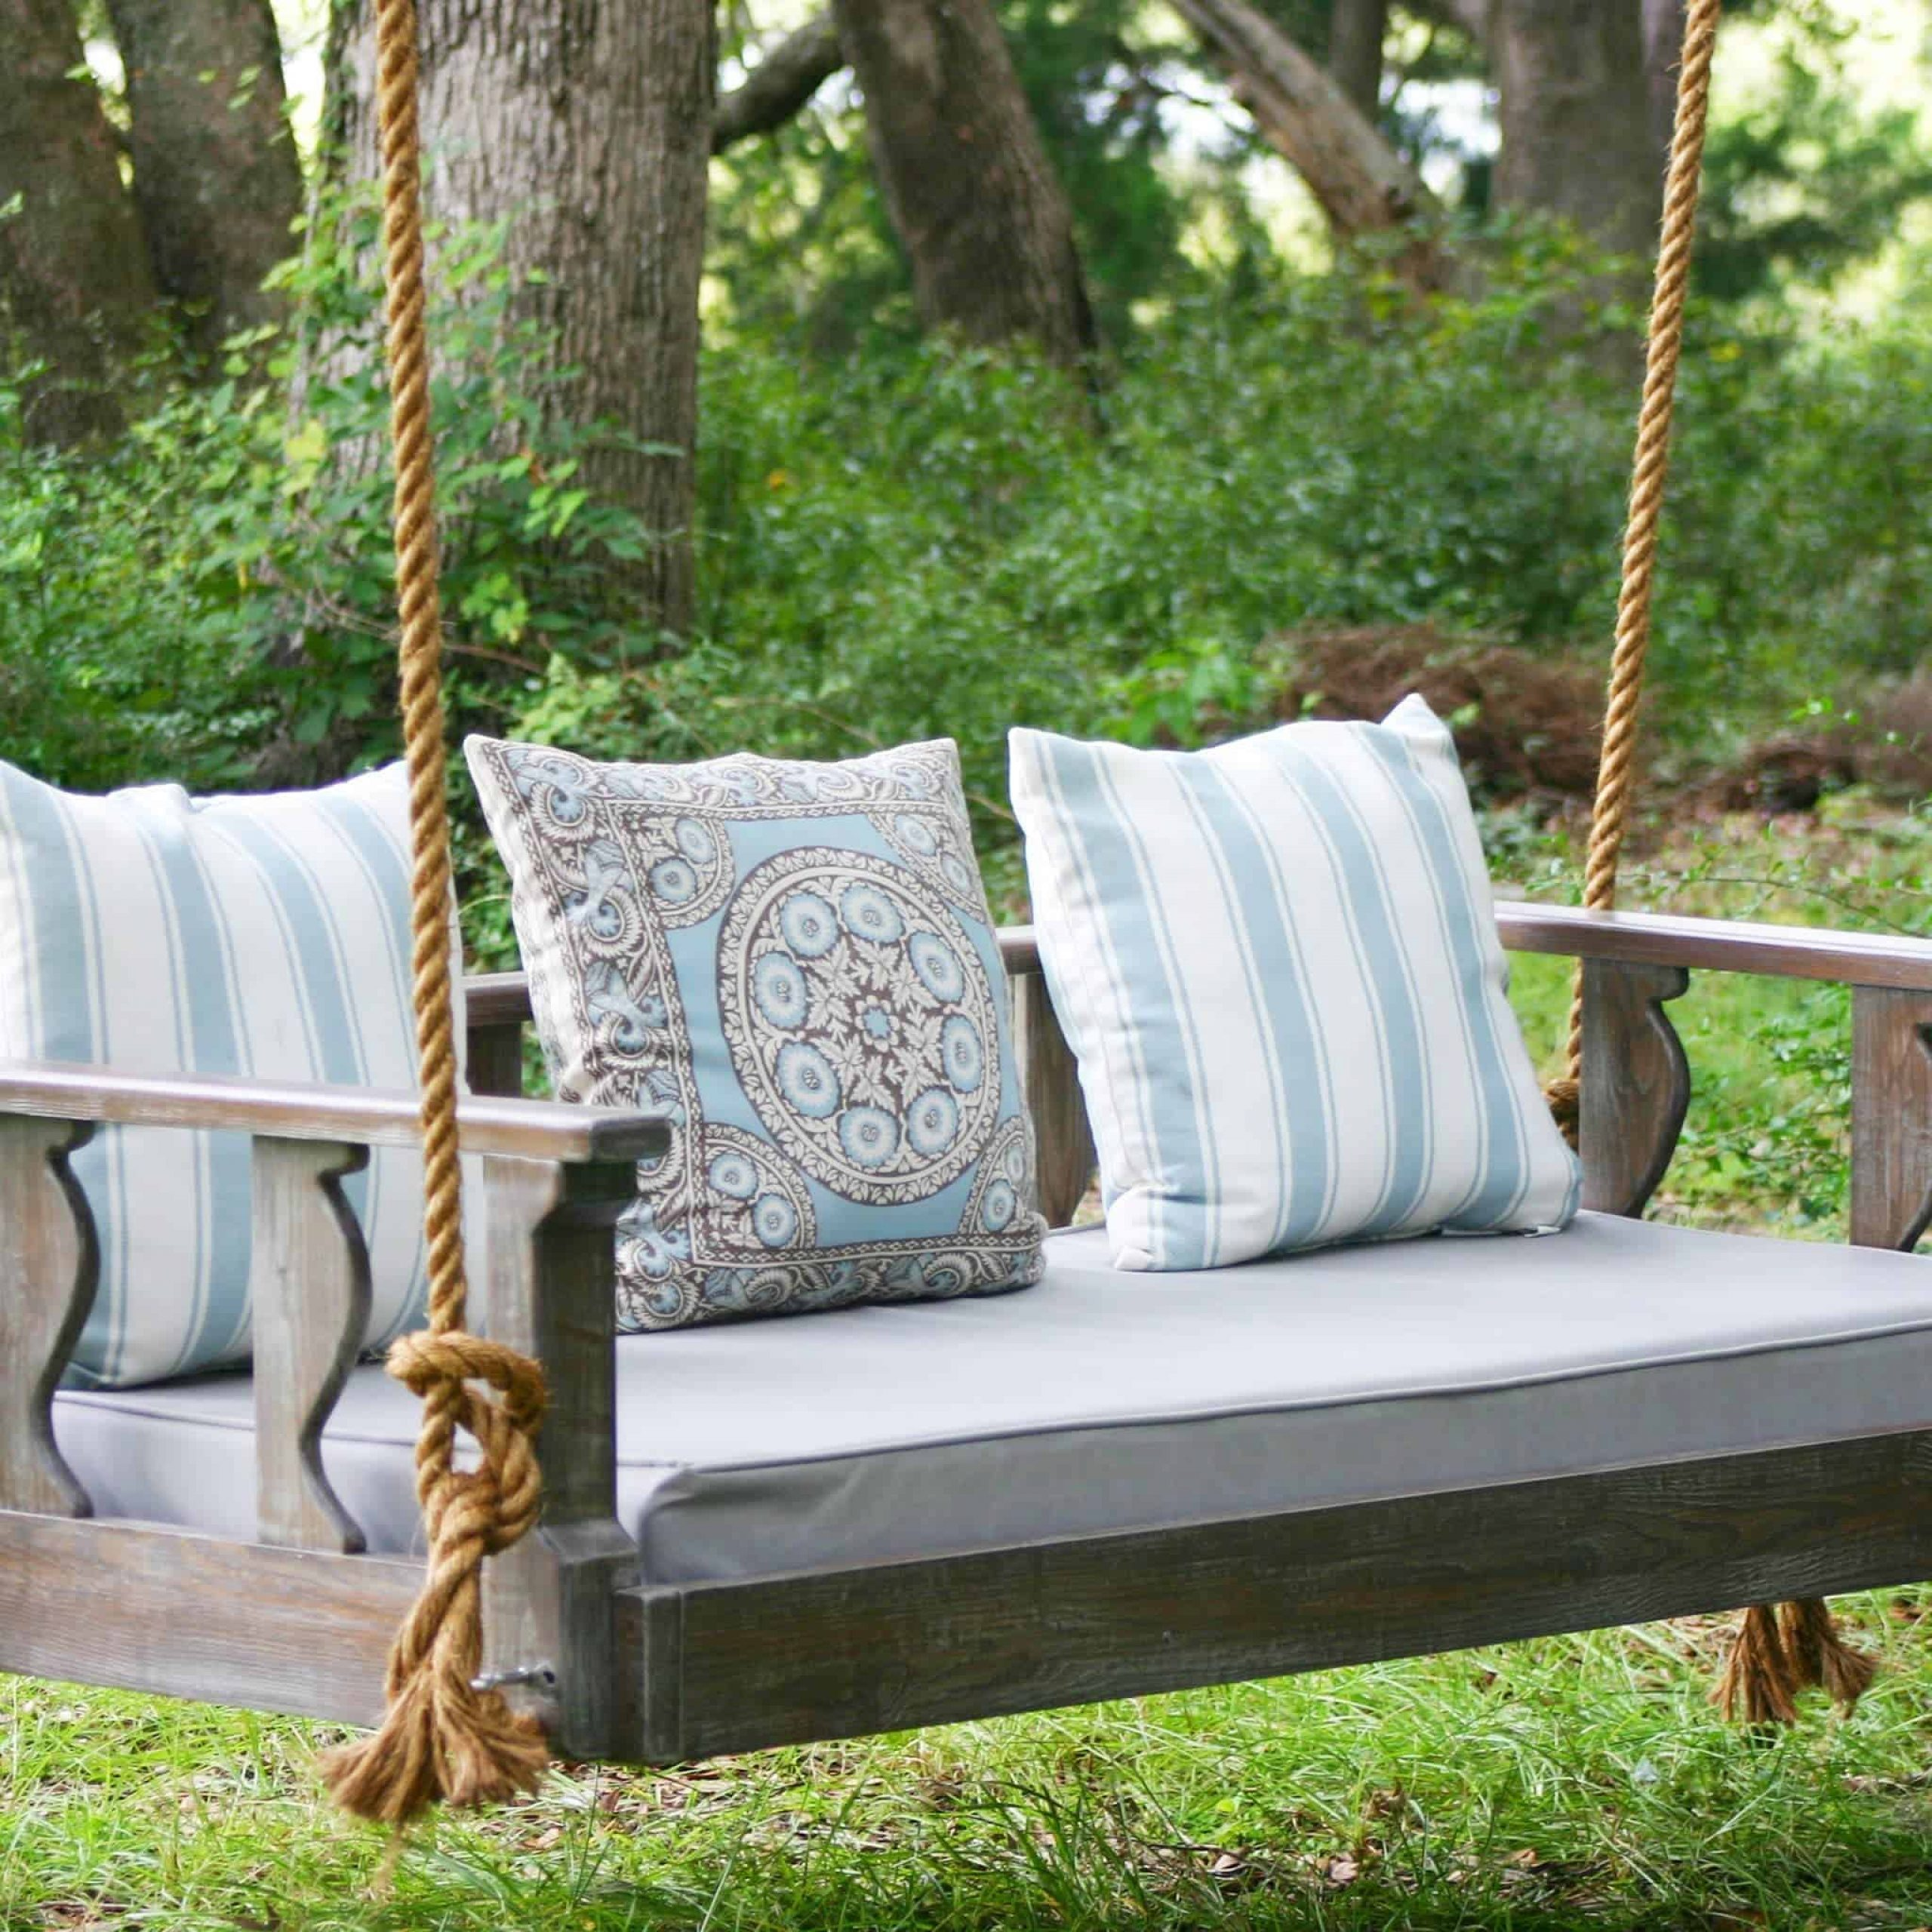 Bed Swings And Porch Swings, Handmadevintage Porch Swings With Regard To Hardwood Hanging Porch Swings With Stand (View 17 of 25)